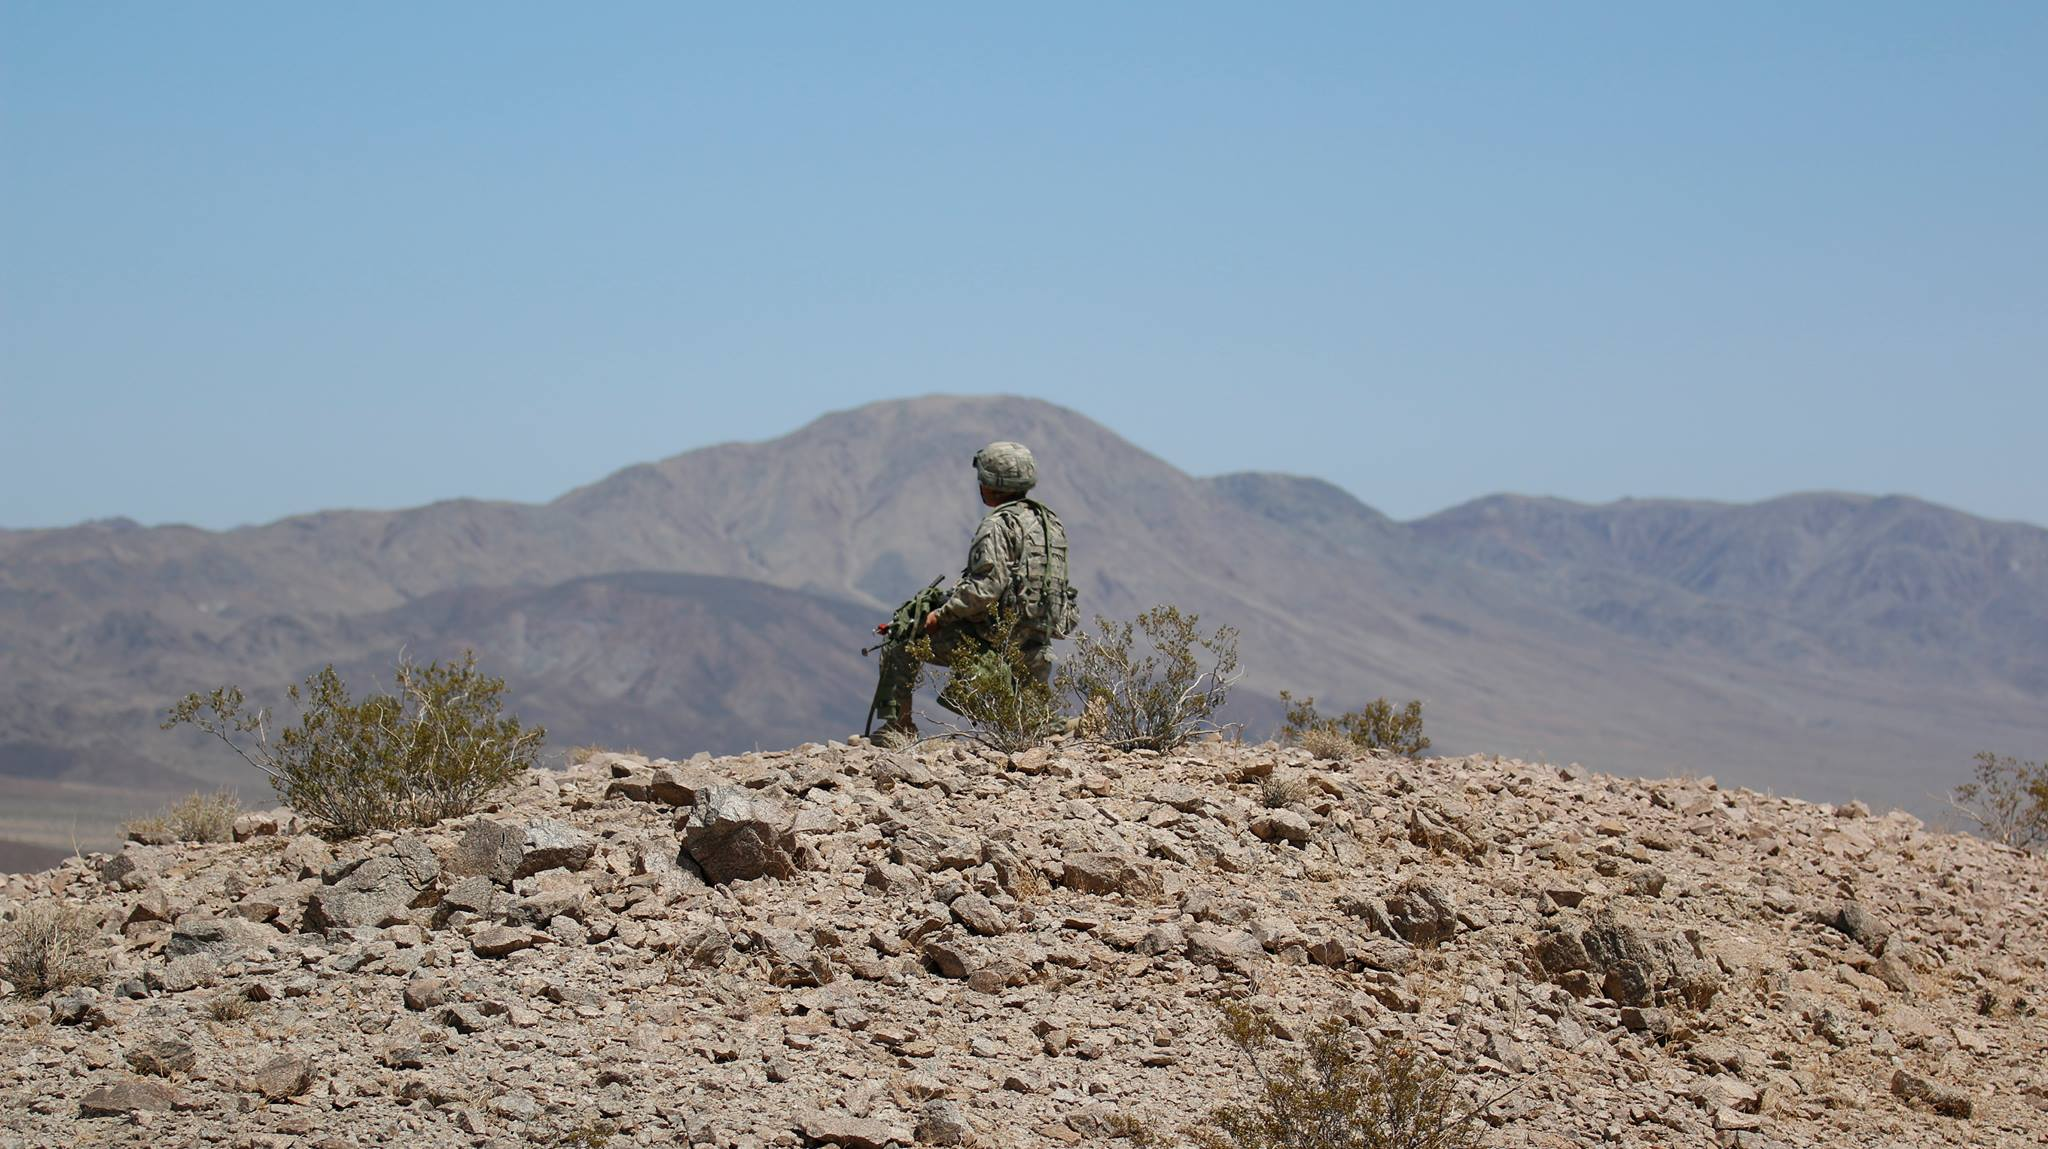 A Soldier guards a simulated downed aircraft site during a National Training Center rotation at Fort Irwin, California, May 16, 2018.